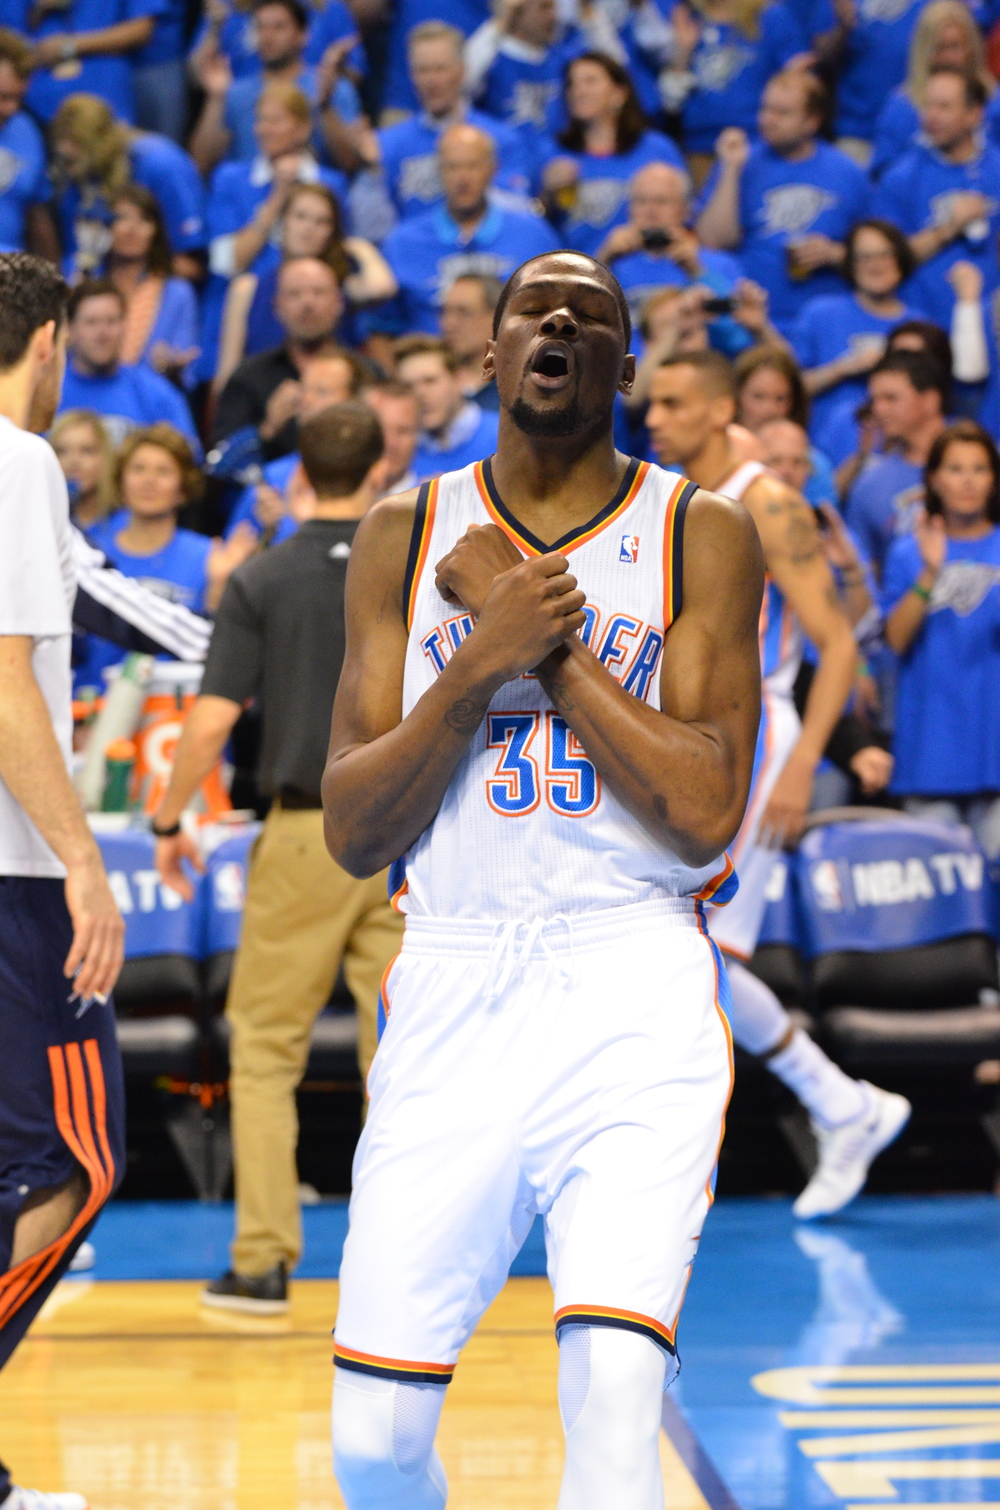 Kevin Durant reacts after scoring against the Memphis Grizzlies. Photo by Torrey Purvey for InsideThunder.com